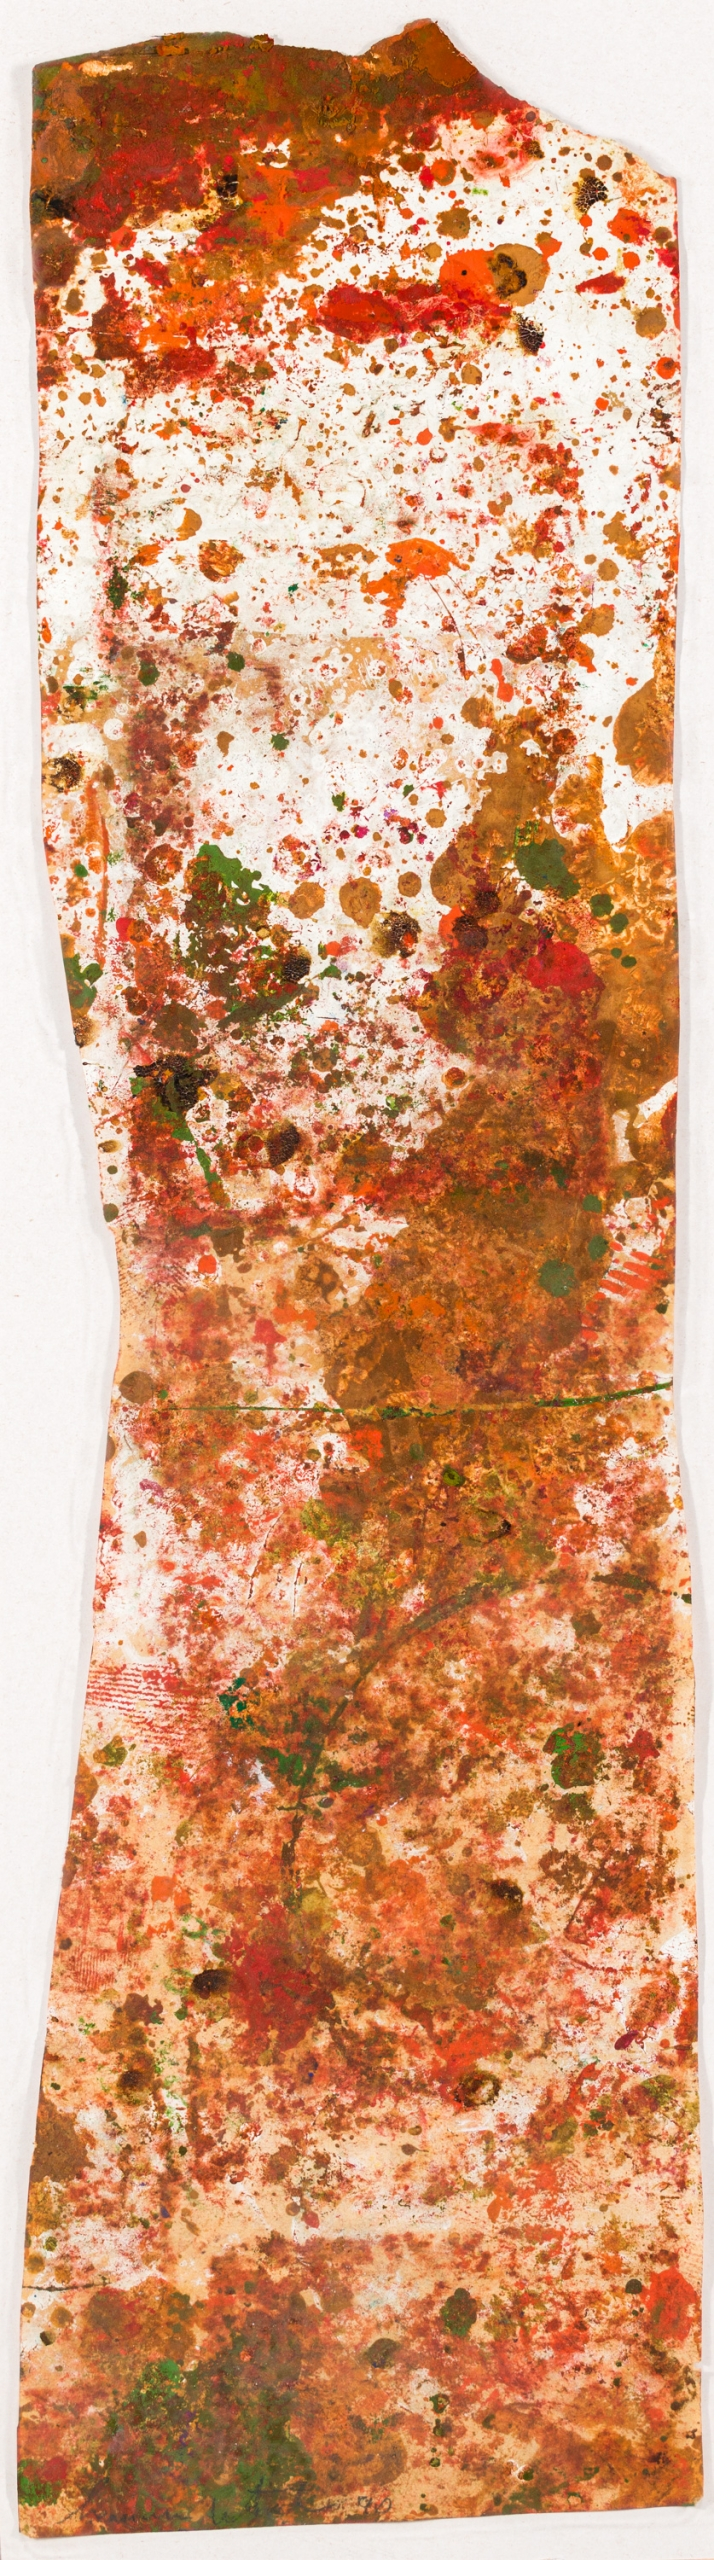 Hermann Nitsch, Ohne Titel / untitled